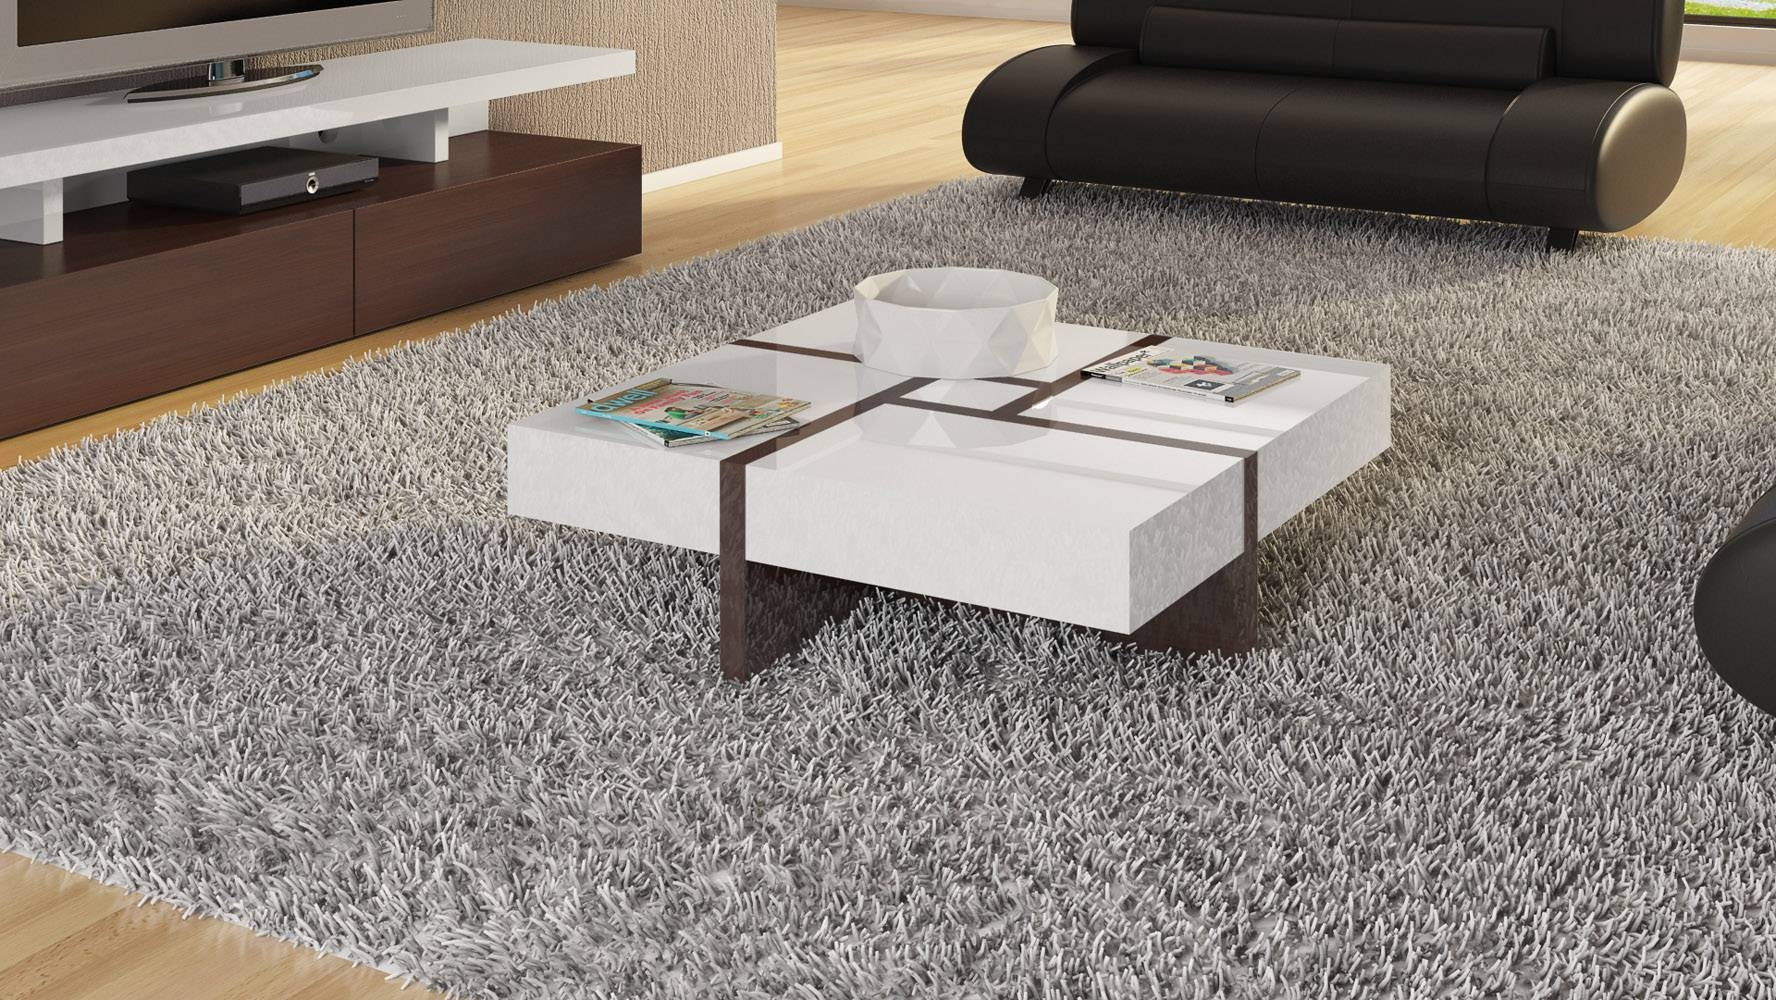 Mcintosh High Gloss Coffee Table With Storage - White Square pertaining to High Gloss Coffee Tables (Image 19 of 30)